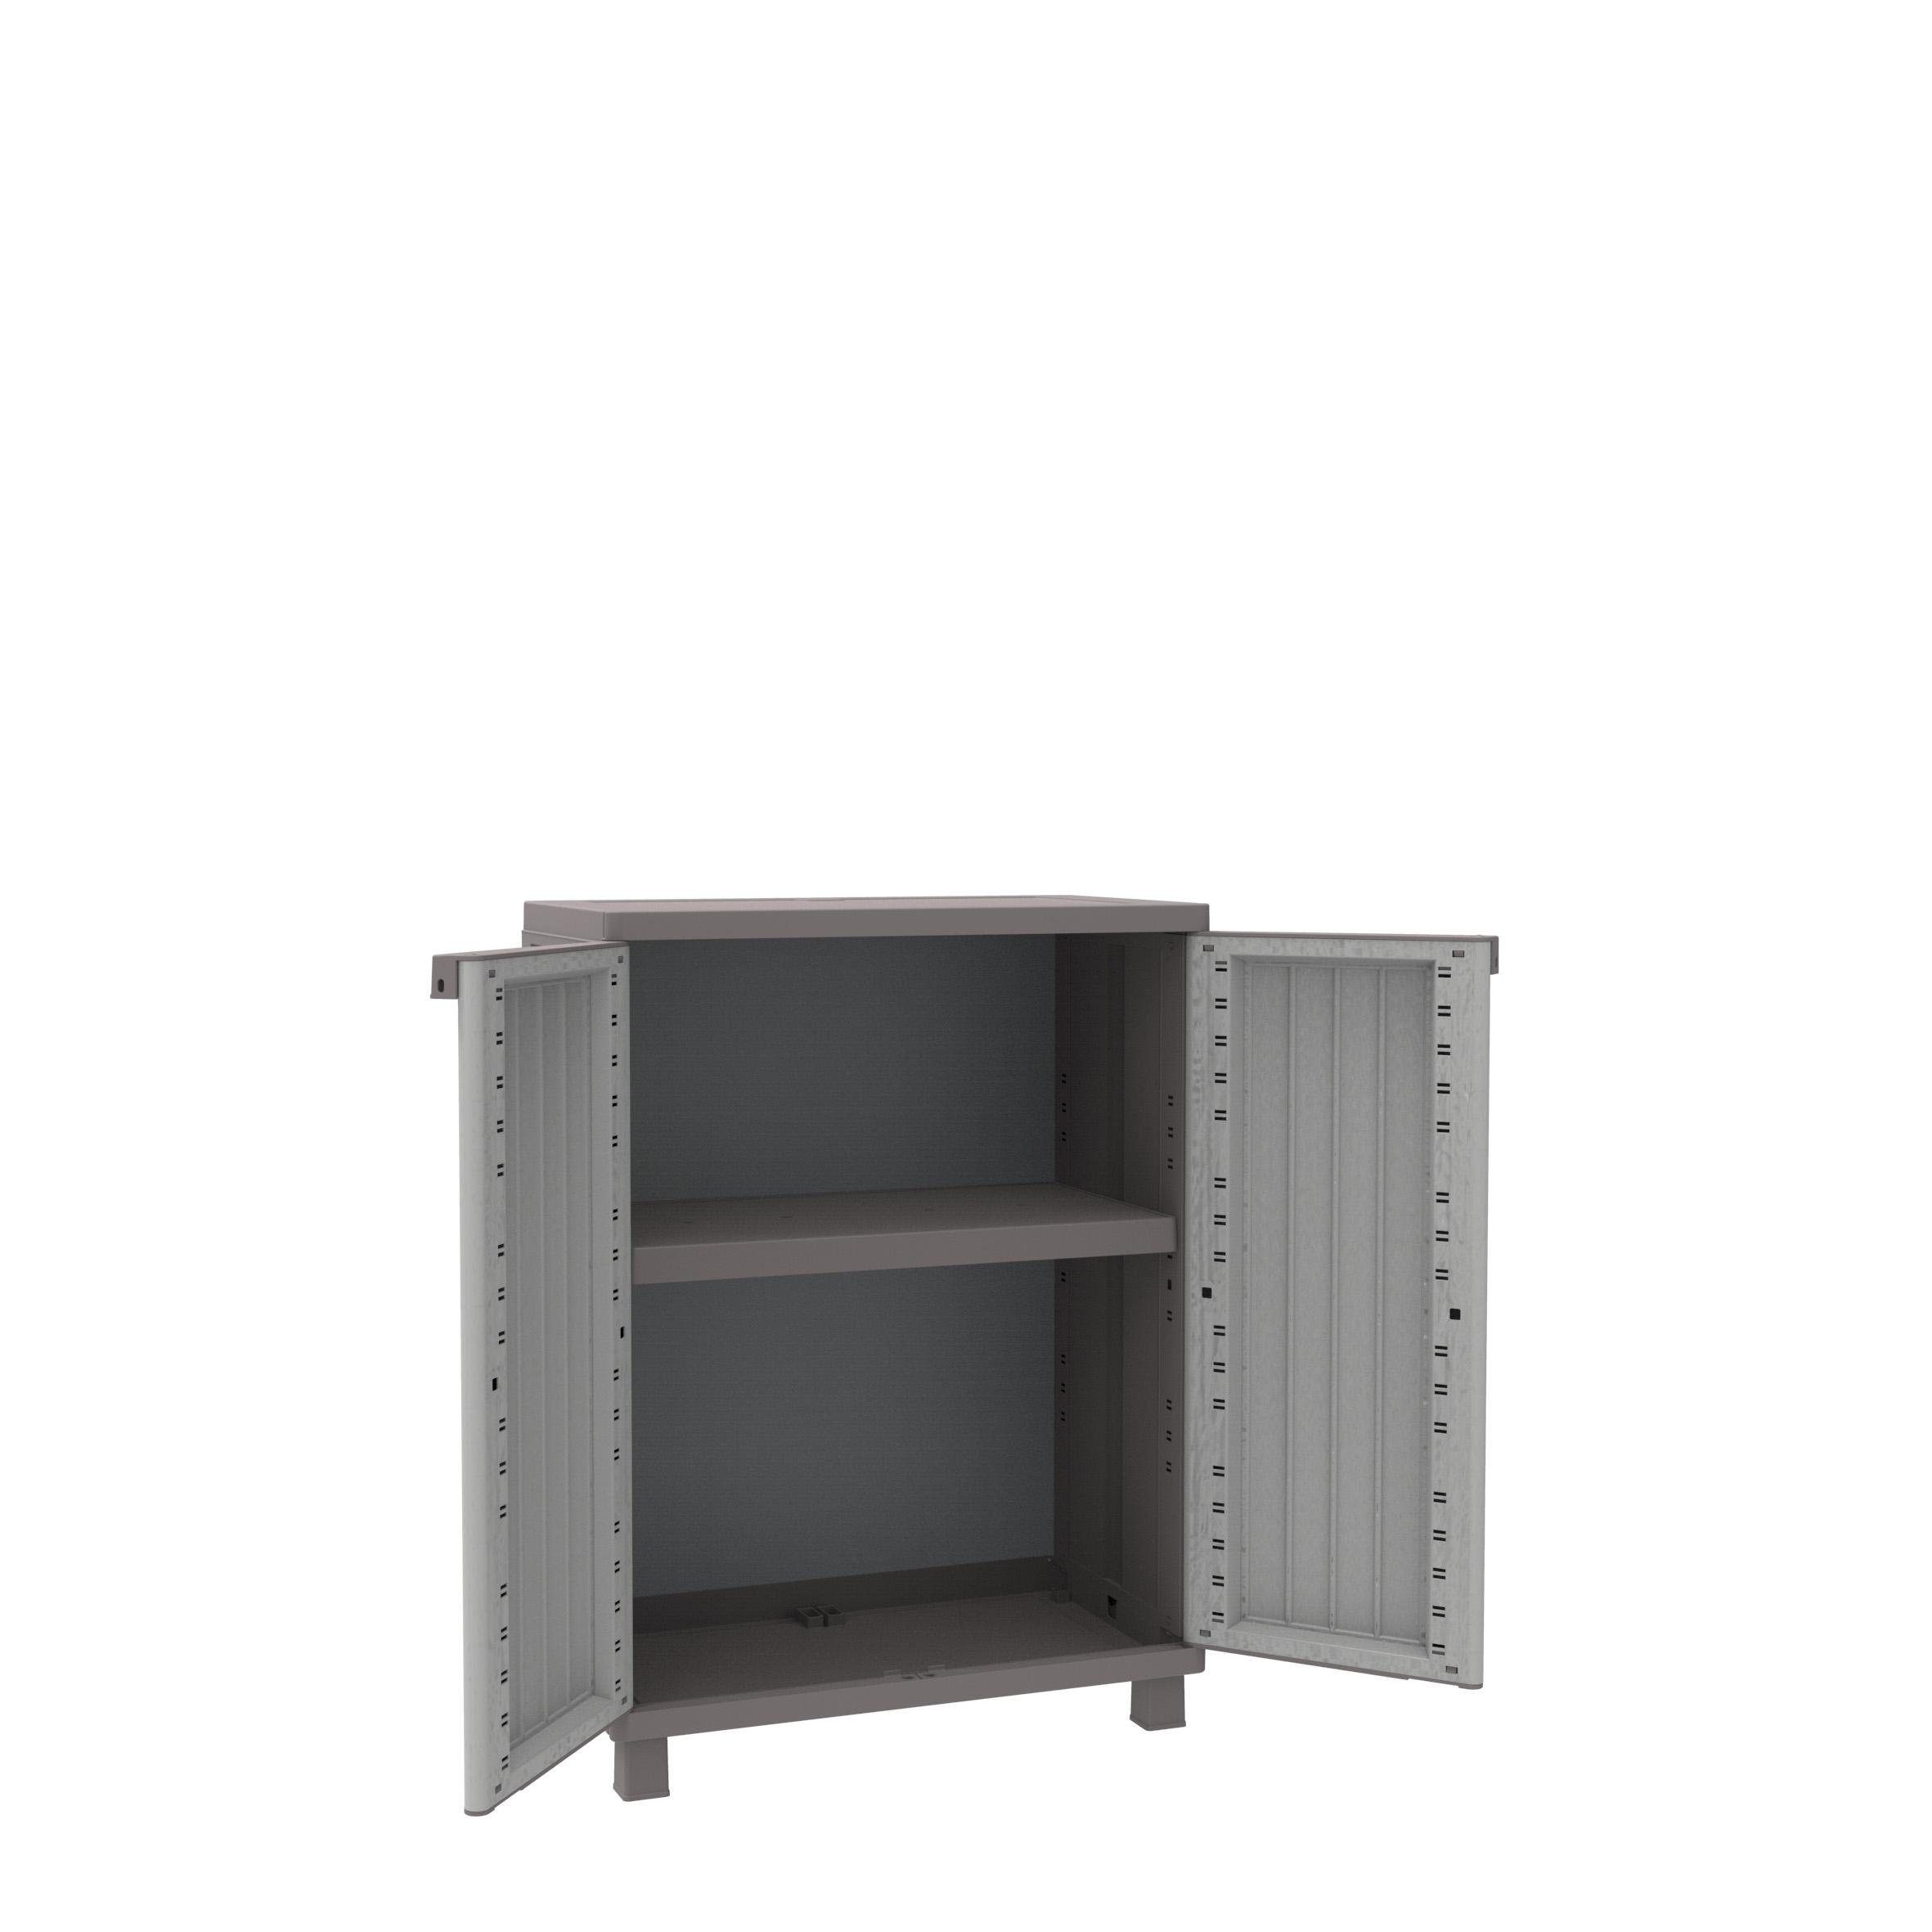 Terry Jwood Outdoor/Indoor Cabinet/Cupboard (Two Door Storage Cabinet with 1 Adjustable Shelves/ 3 Adjustable shelves/ Adjustable shelves)